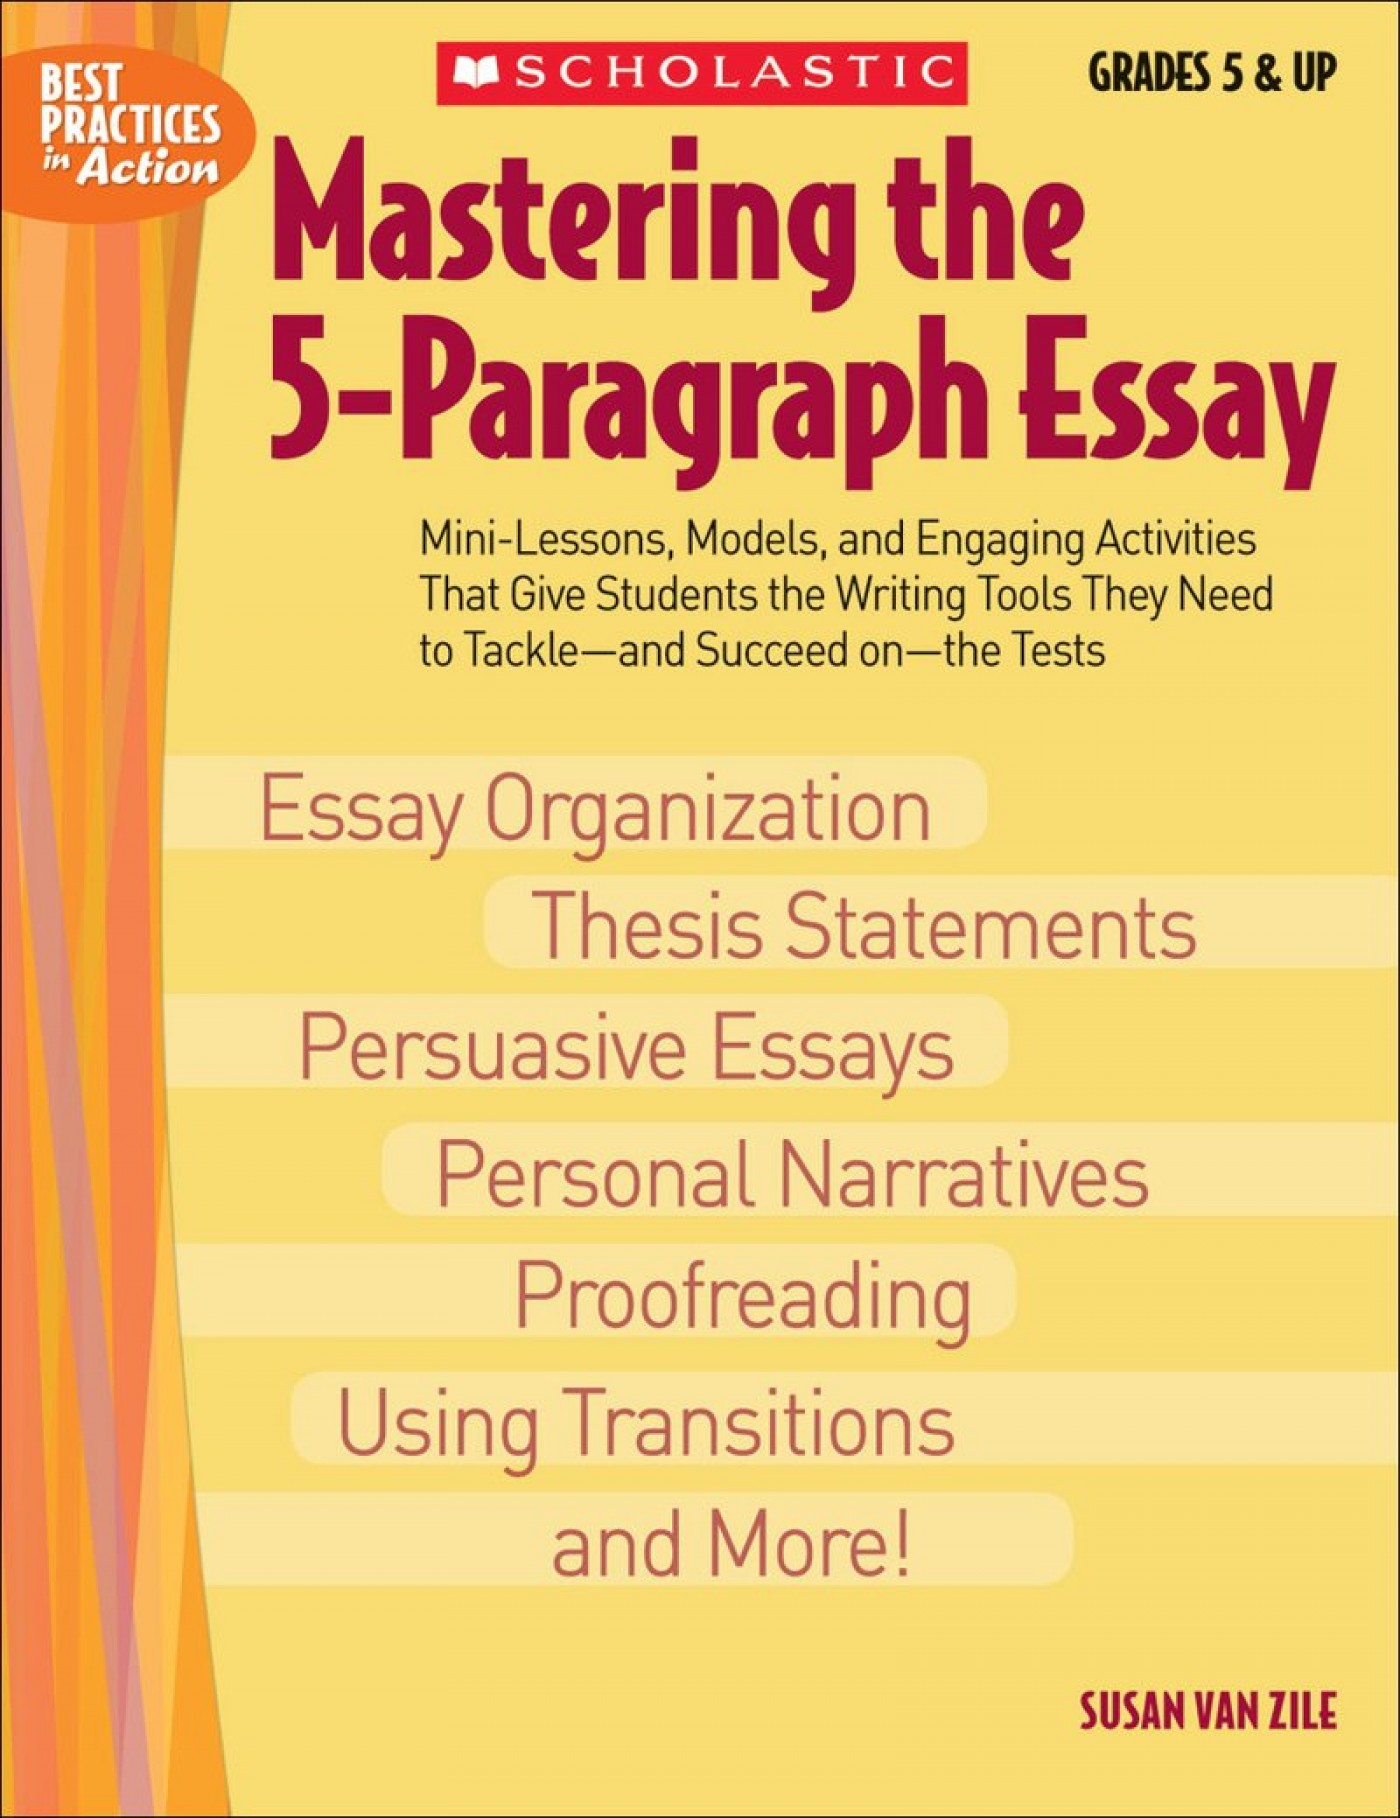 017 Paragraph Essay Example 9780439635257 Mres Singular 5 Argumentative Graphic Organizer Pdf Topics For Middle School Elementary 1400